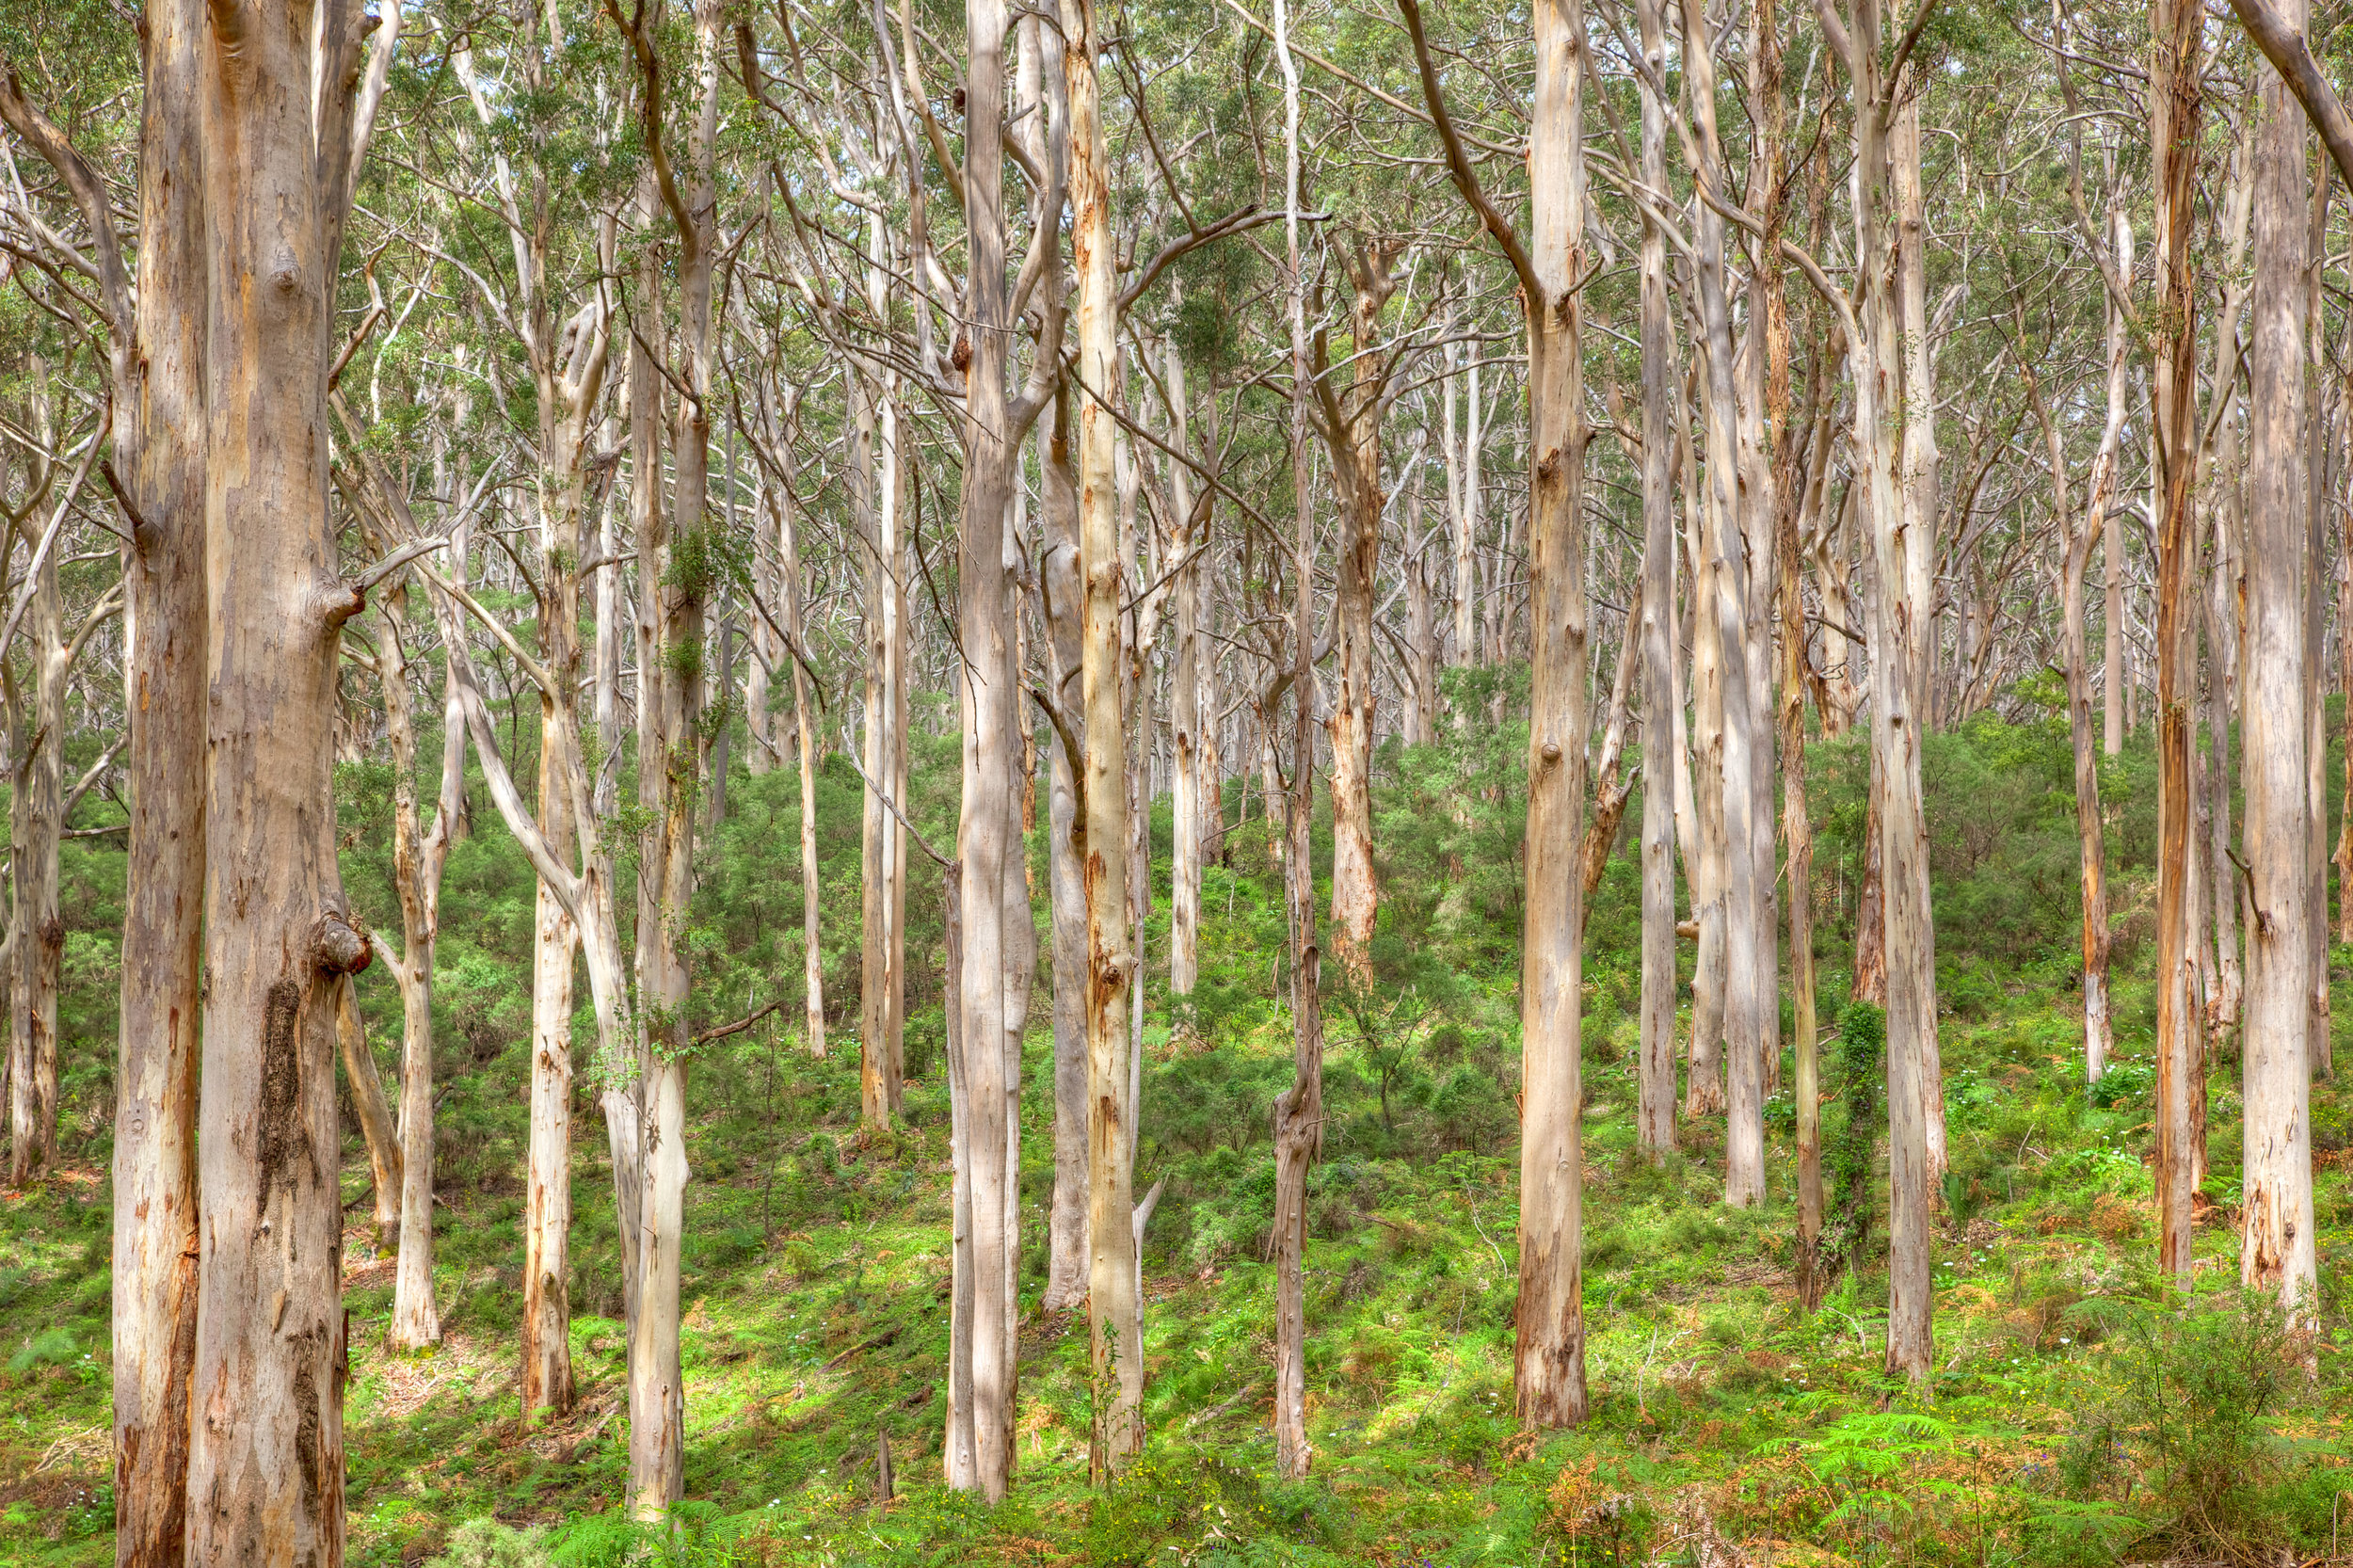 Adrenalin Hit List #6 - Surround yourself with the majesty of giant Karri trees